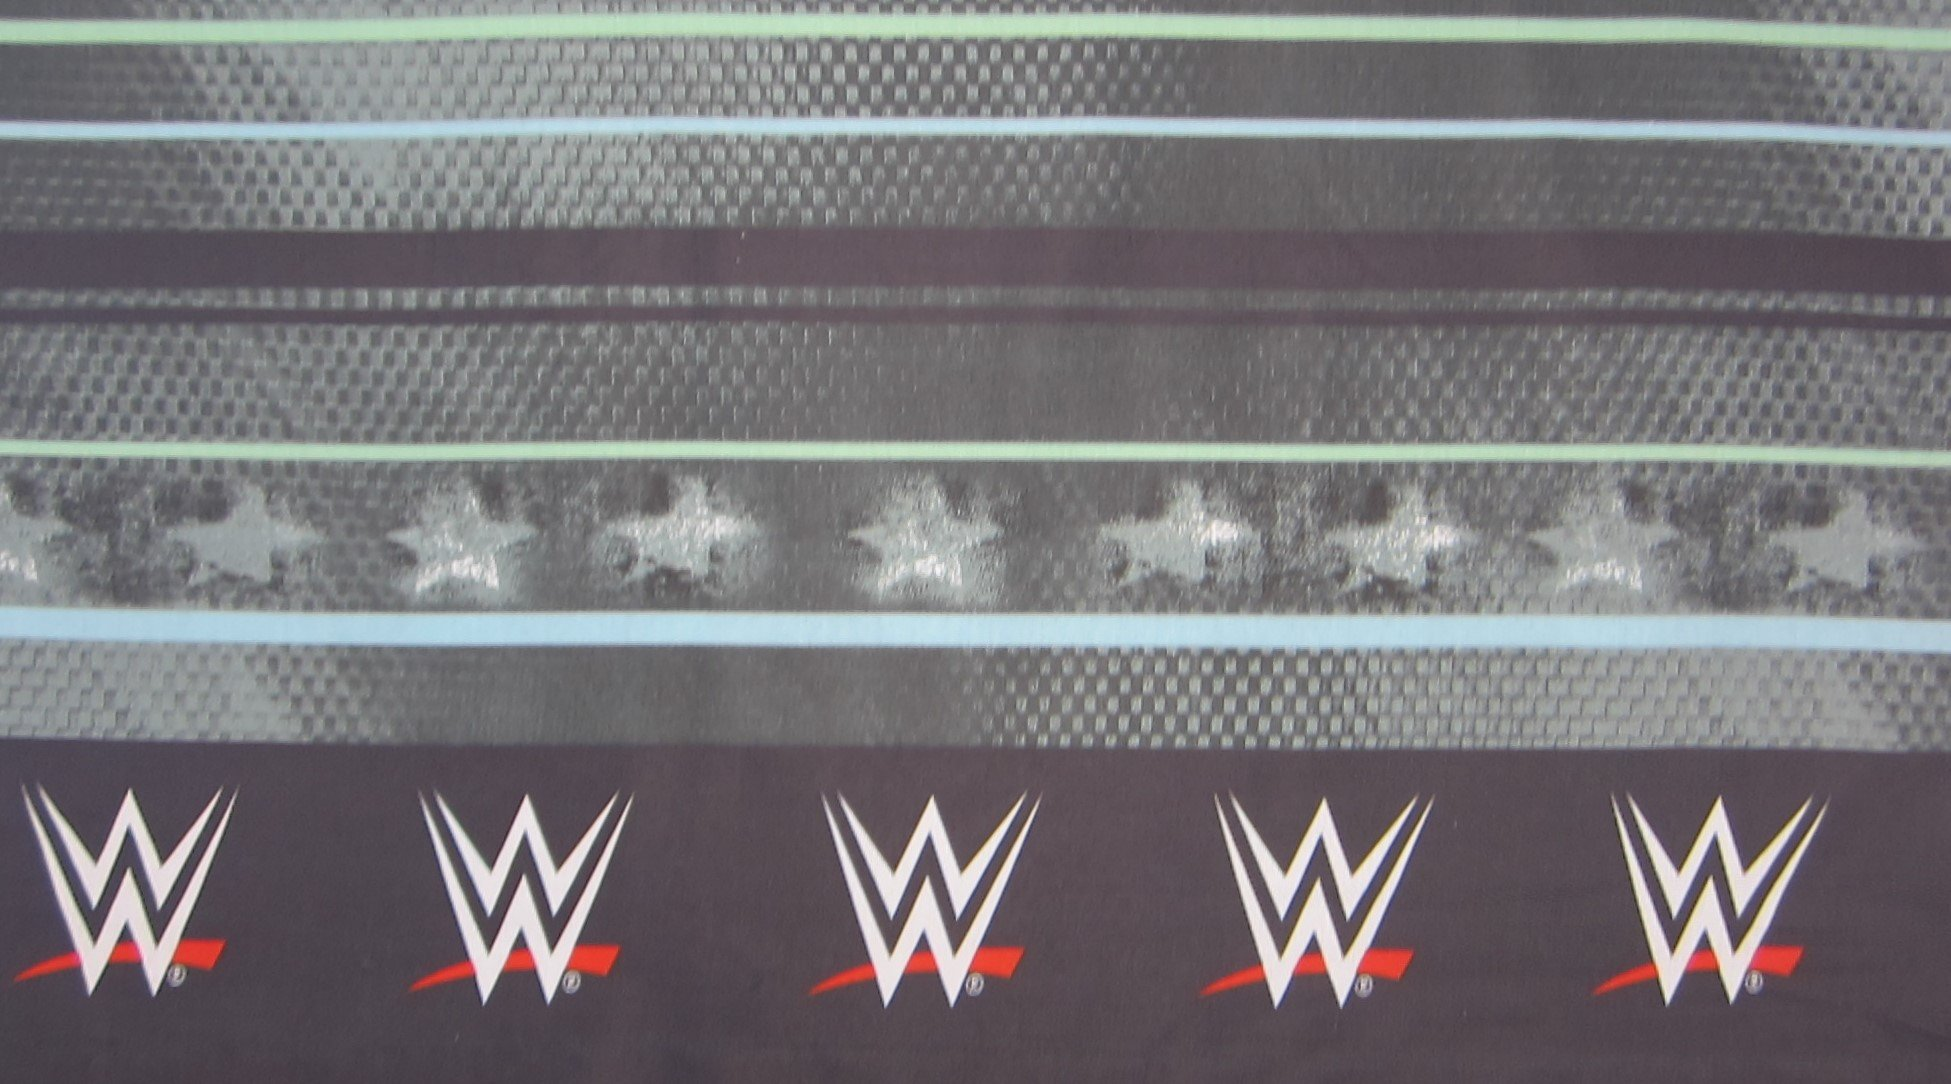 WWE Industrial Strength 55% Cotton (FLAT SHEET ONLY) Size TWIN Boys Girls Kids Bedding